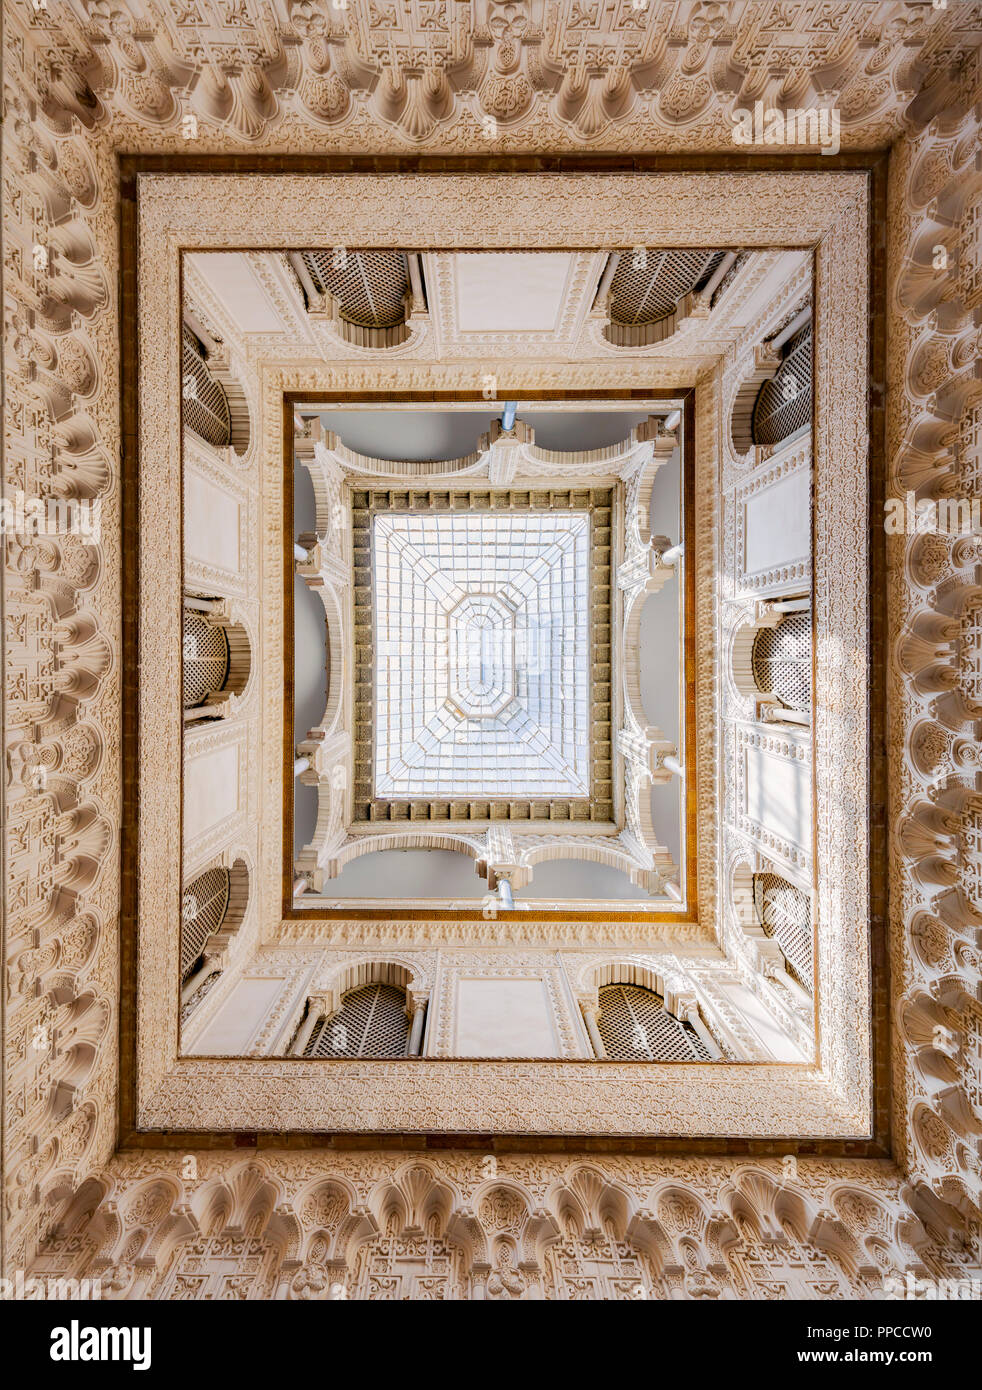 Ceiling in the courtyard with a glass roof, Alcázar of Seville, Royal Palace, Palace Real Alcazar, Andalusia, Spain - Stock Image